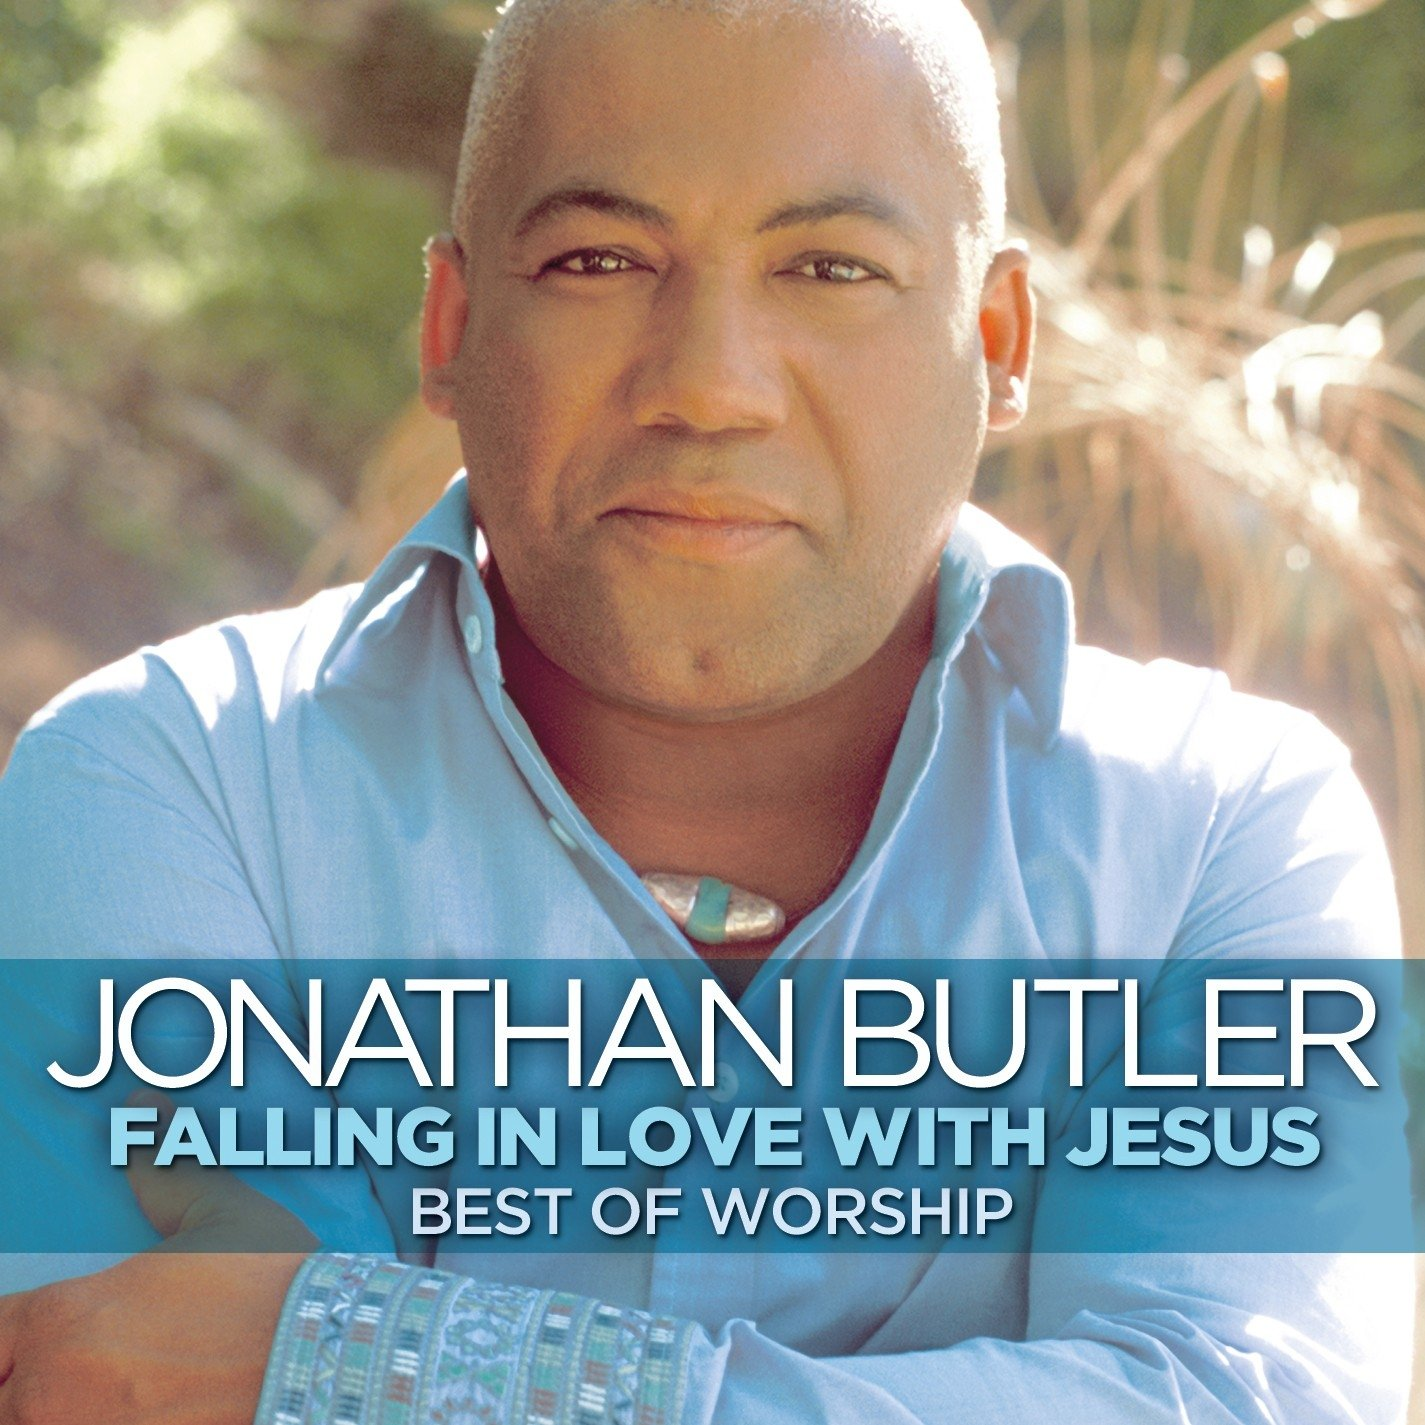 Falling in love with jesus: best of worship jonathan butler.